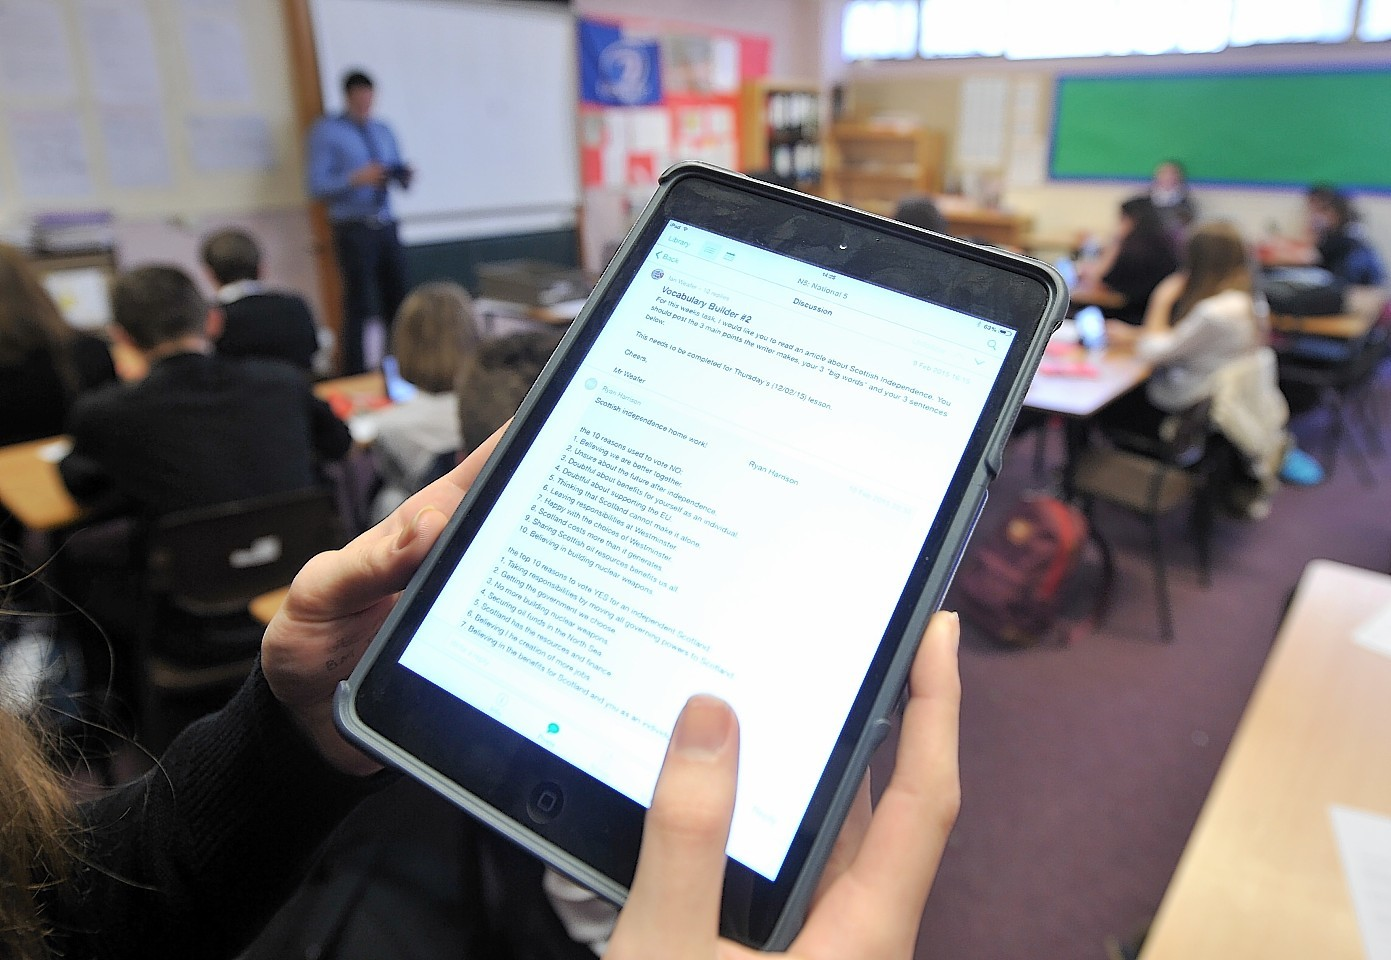 More Highland pupils will be using tablets under the council's plans